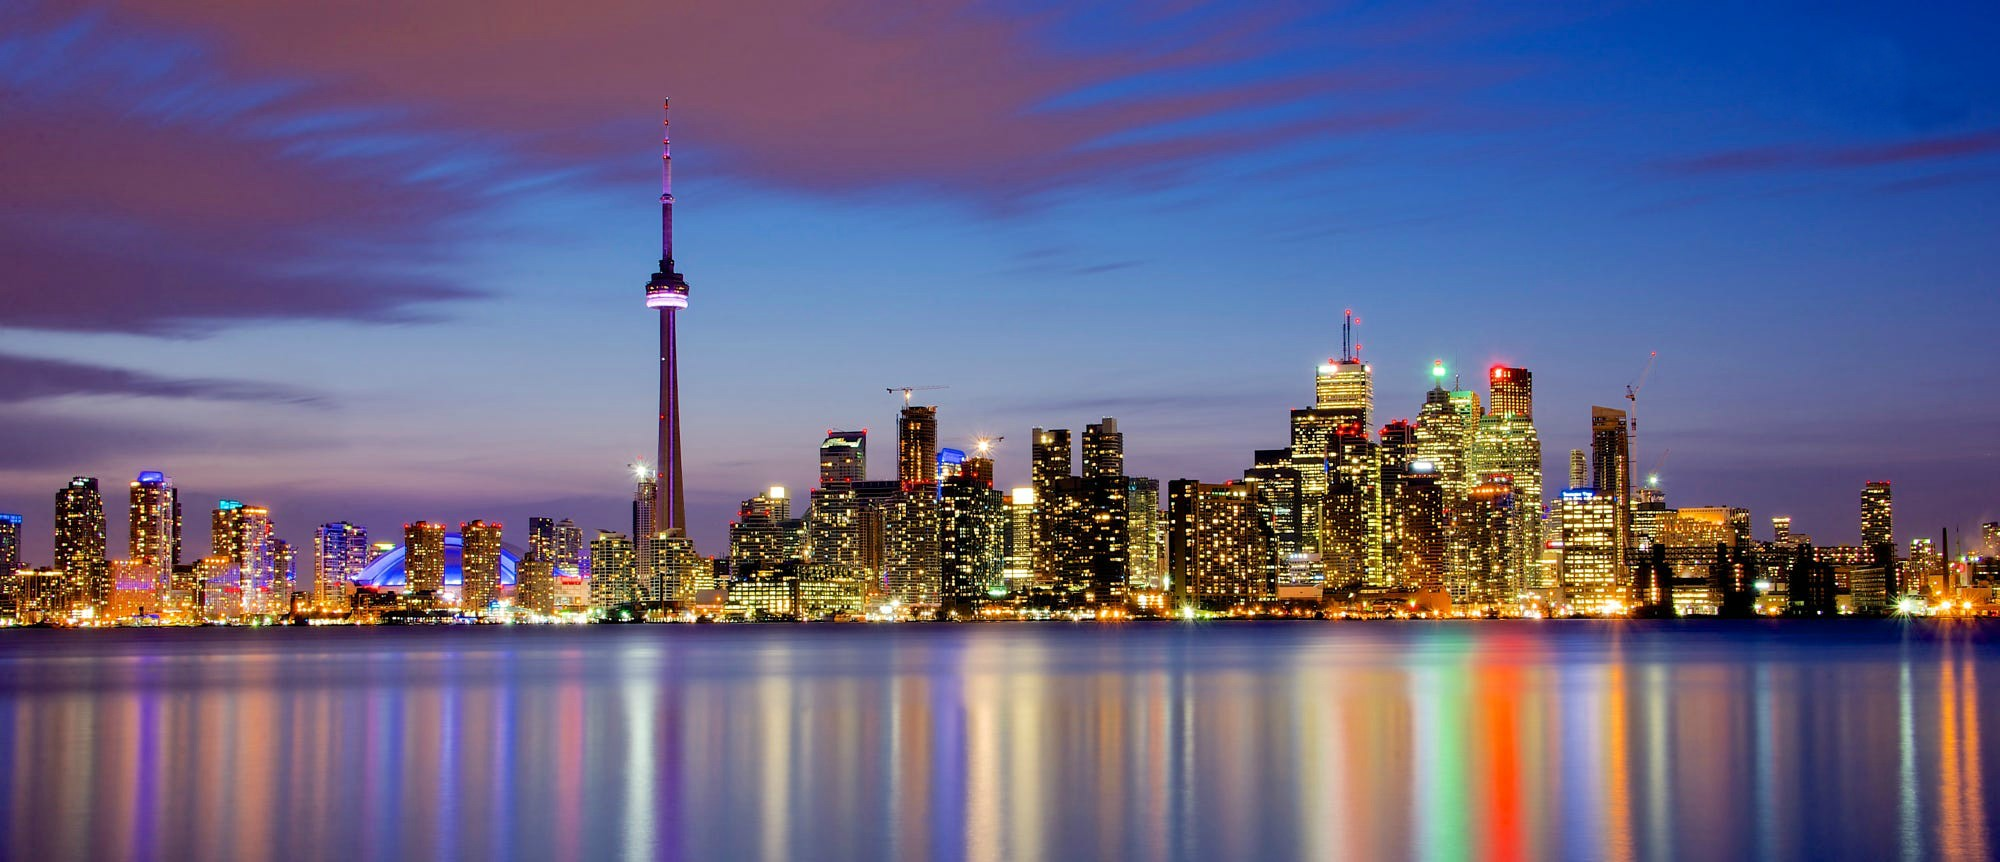 Funny Hd Animal Wallpapers Toronto City Cityscape Reflection Architecture Lights